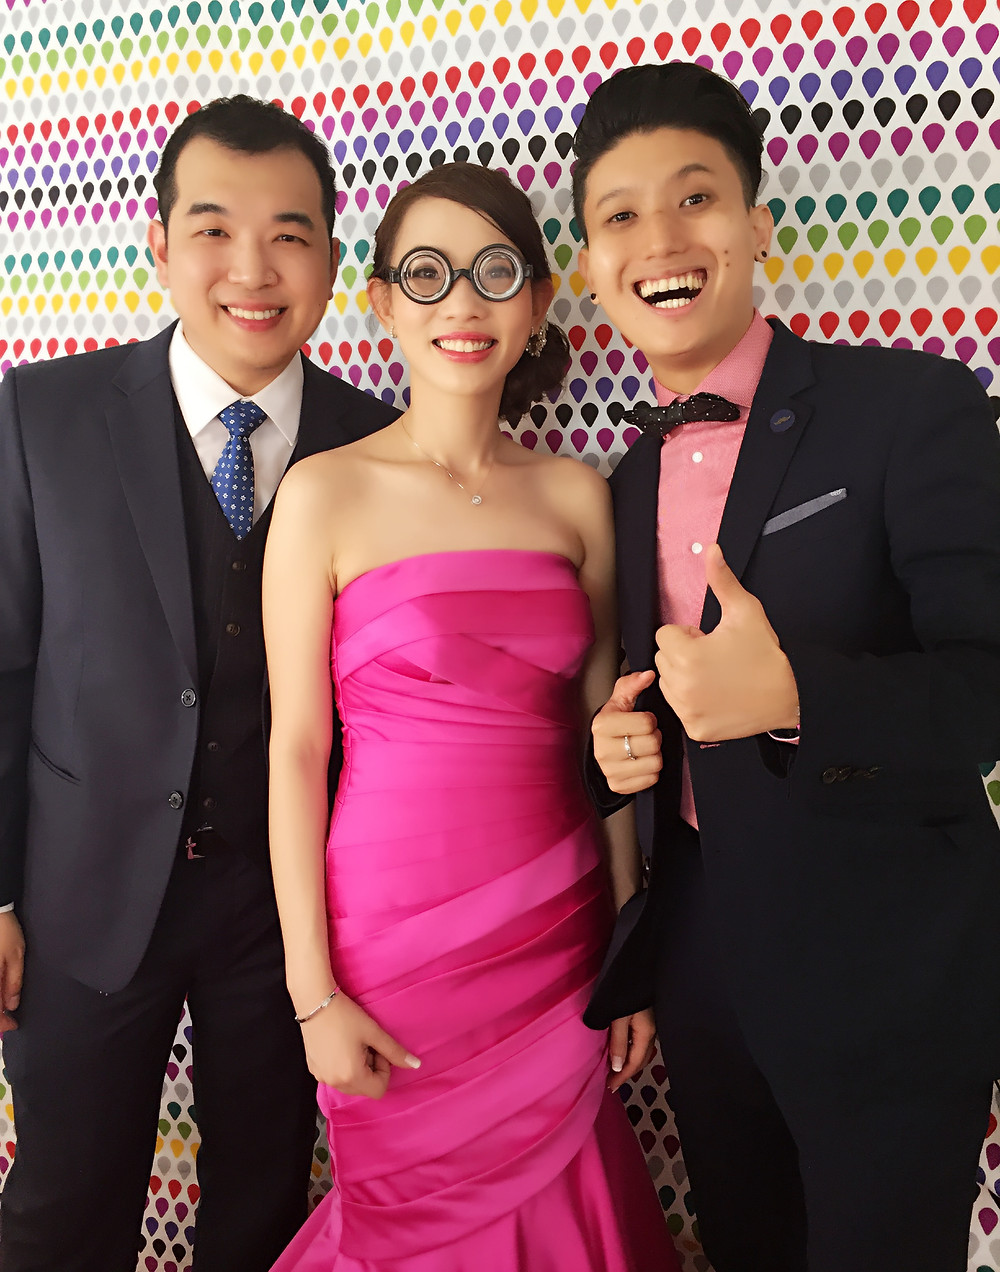 Emcee Singapore - Ainsley Chong, Wedding Lunch of Kian Giap and Beverly Cham